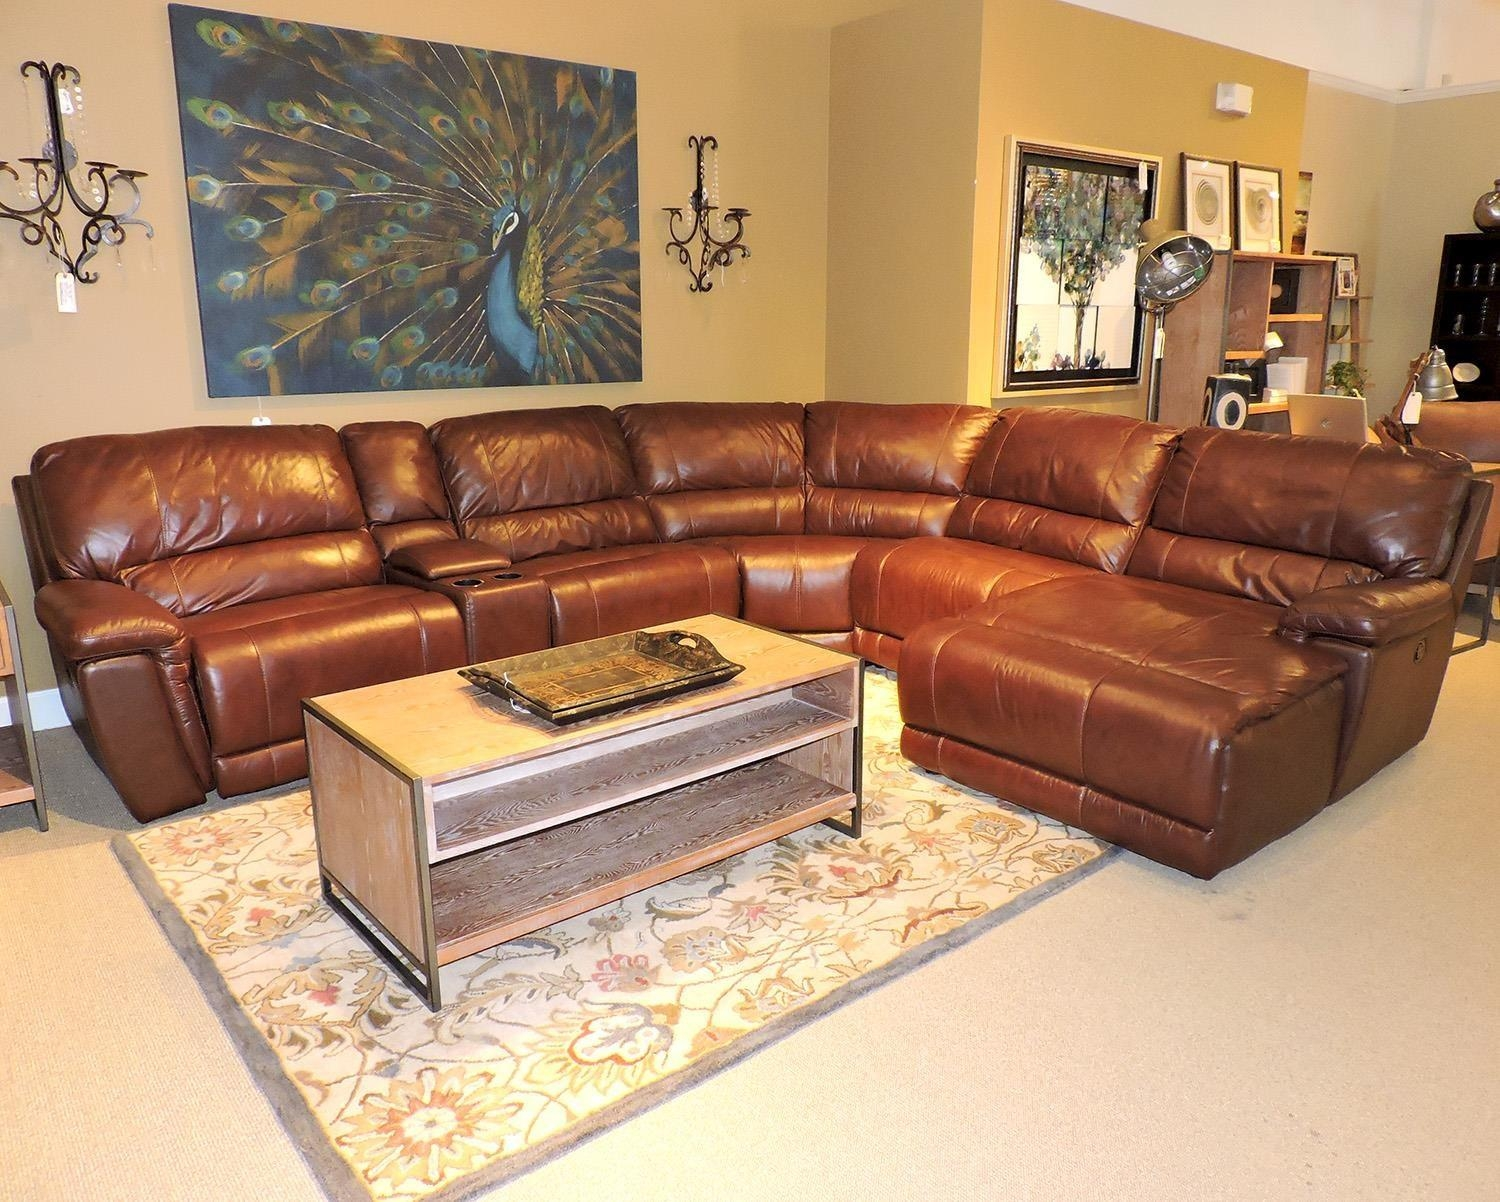 Sectional Sofas | Washington Dc, Northern Virginia, Maryland And Inside Camel Colored Sectional Sofa (View 12 of 15)